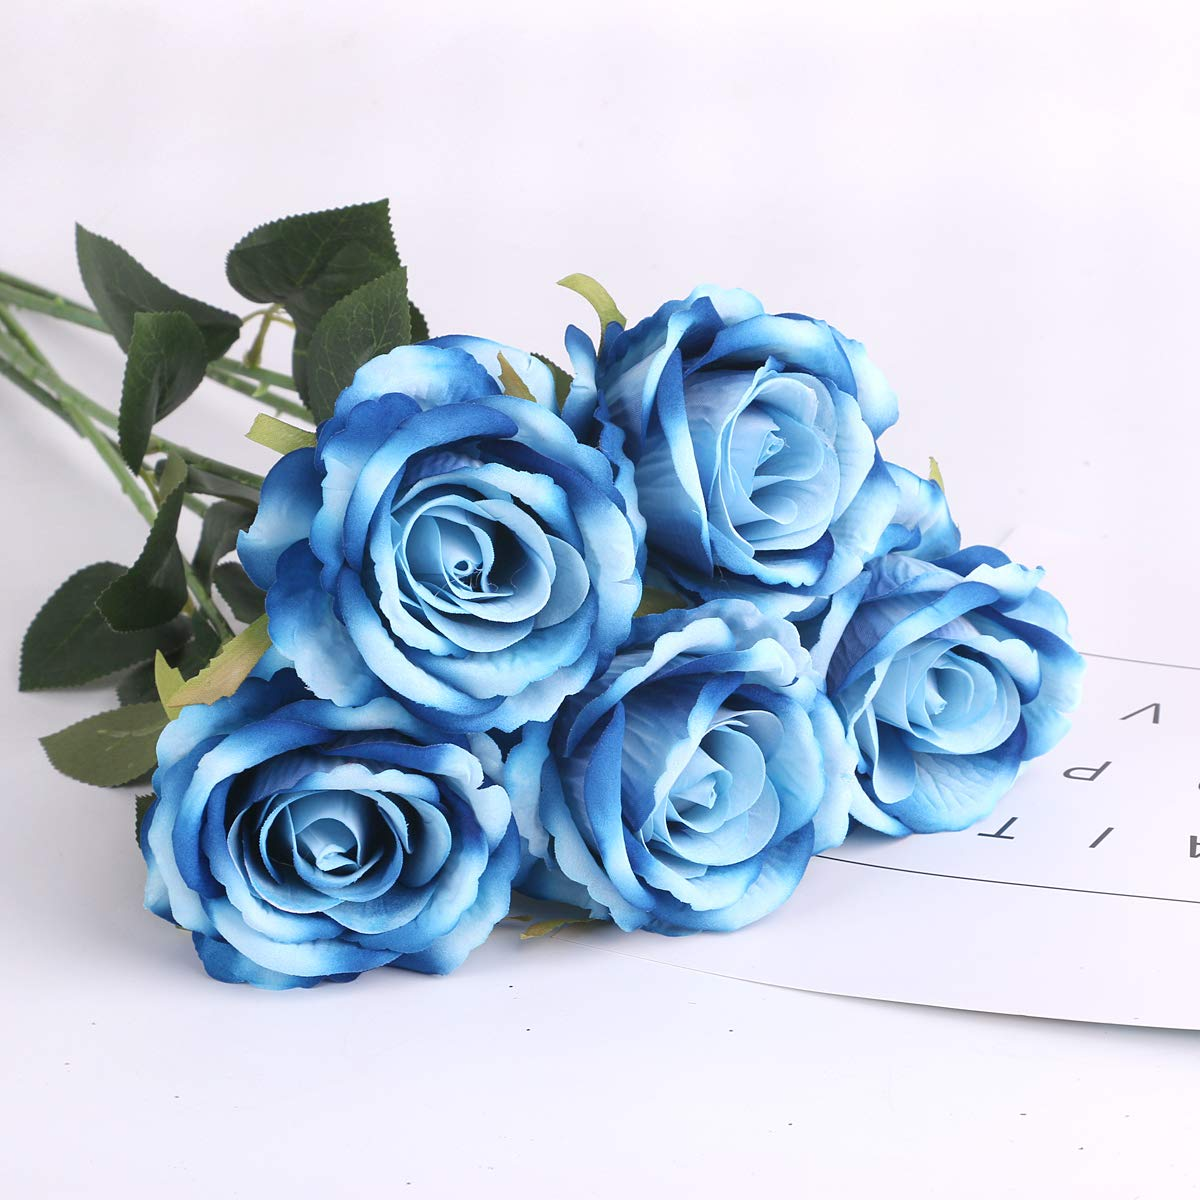 Louiesya-Artificial-Flowers-Fake-Flowers-Bouquet-Silk-Roses-Real-Touch-for-Home-Garden-Party-Floral-Decor-6-Pcs-Bridal-Wedding-BouquetBlue